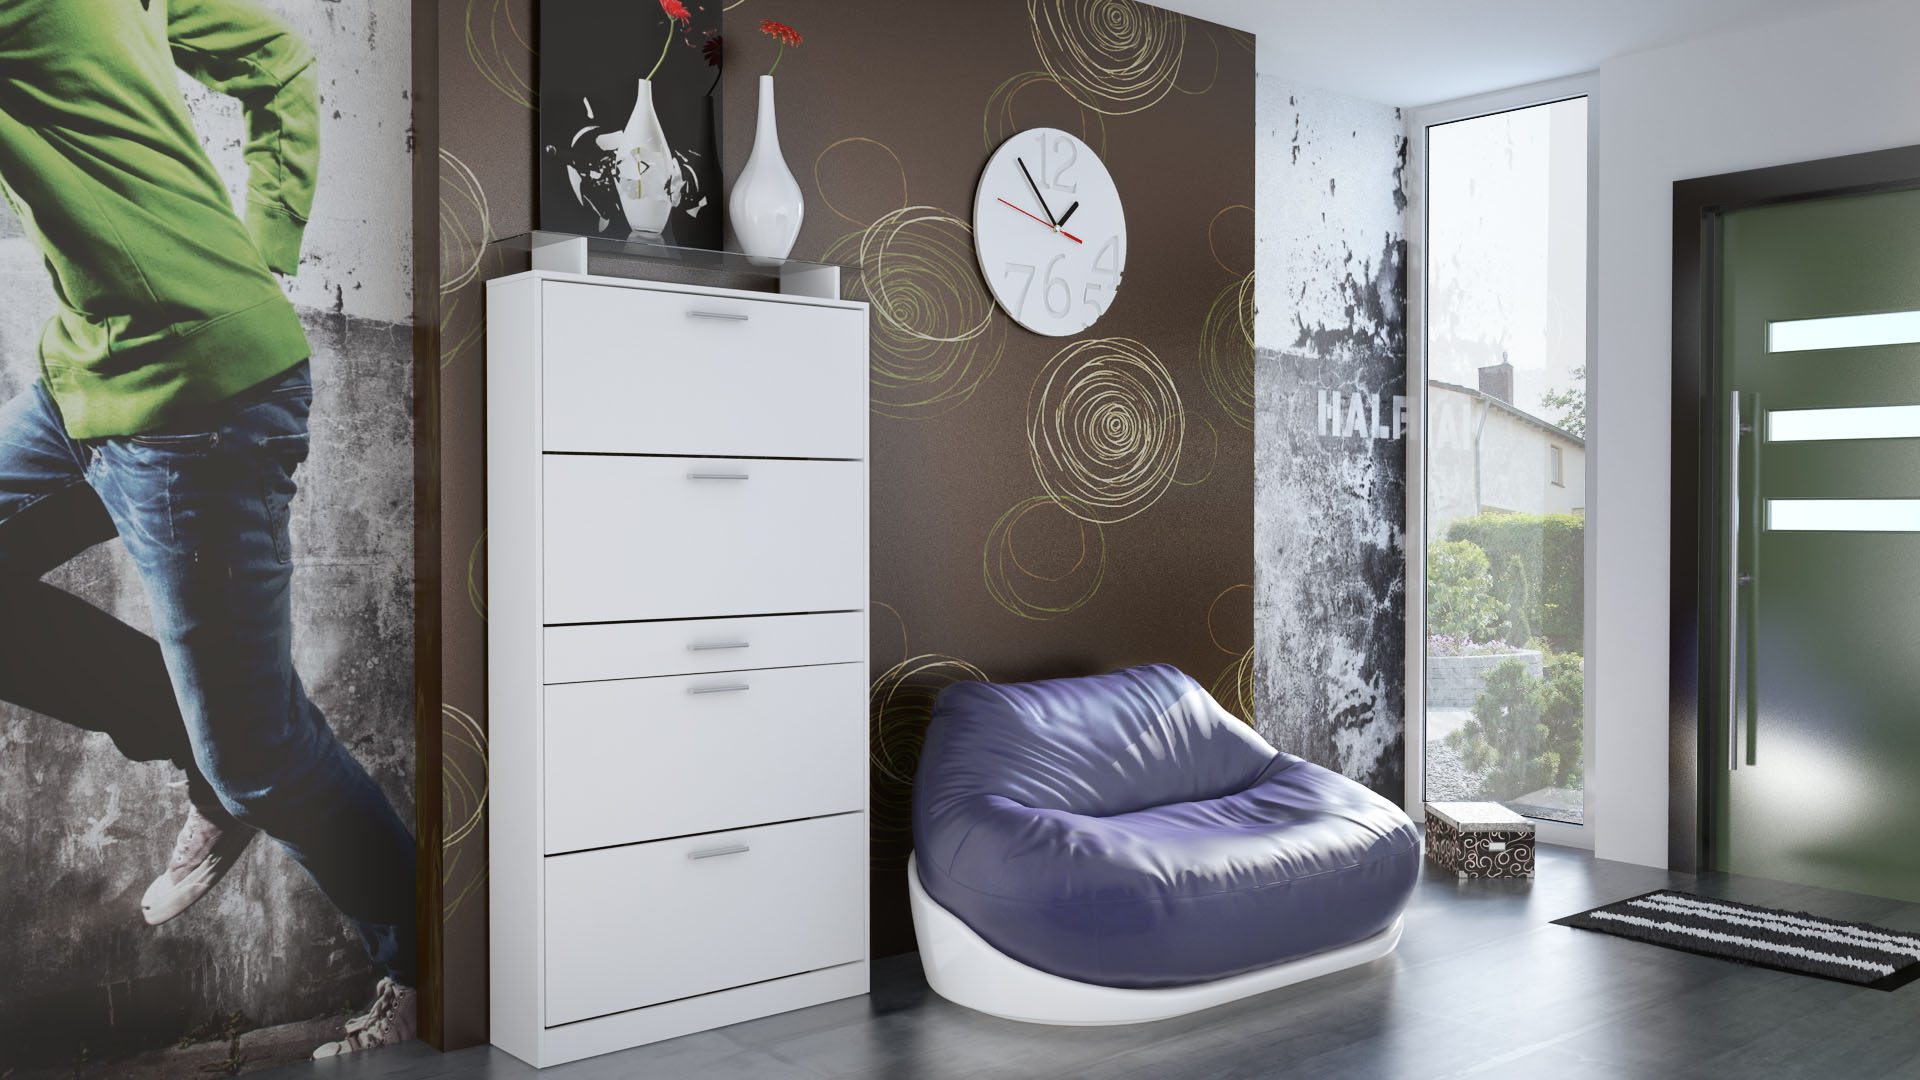 abverkauf schuhschrank schuhkipper schuh regal flur rima hochglanz matt ebay. Black Bedroom Furniture Sets. Home Design Ideas